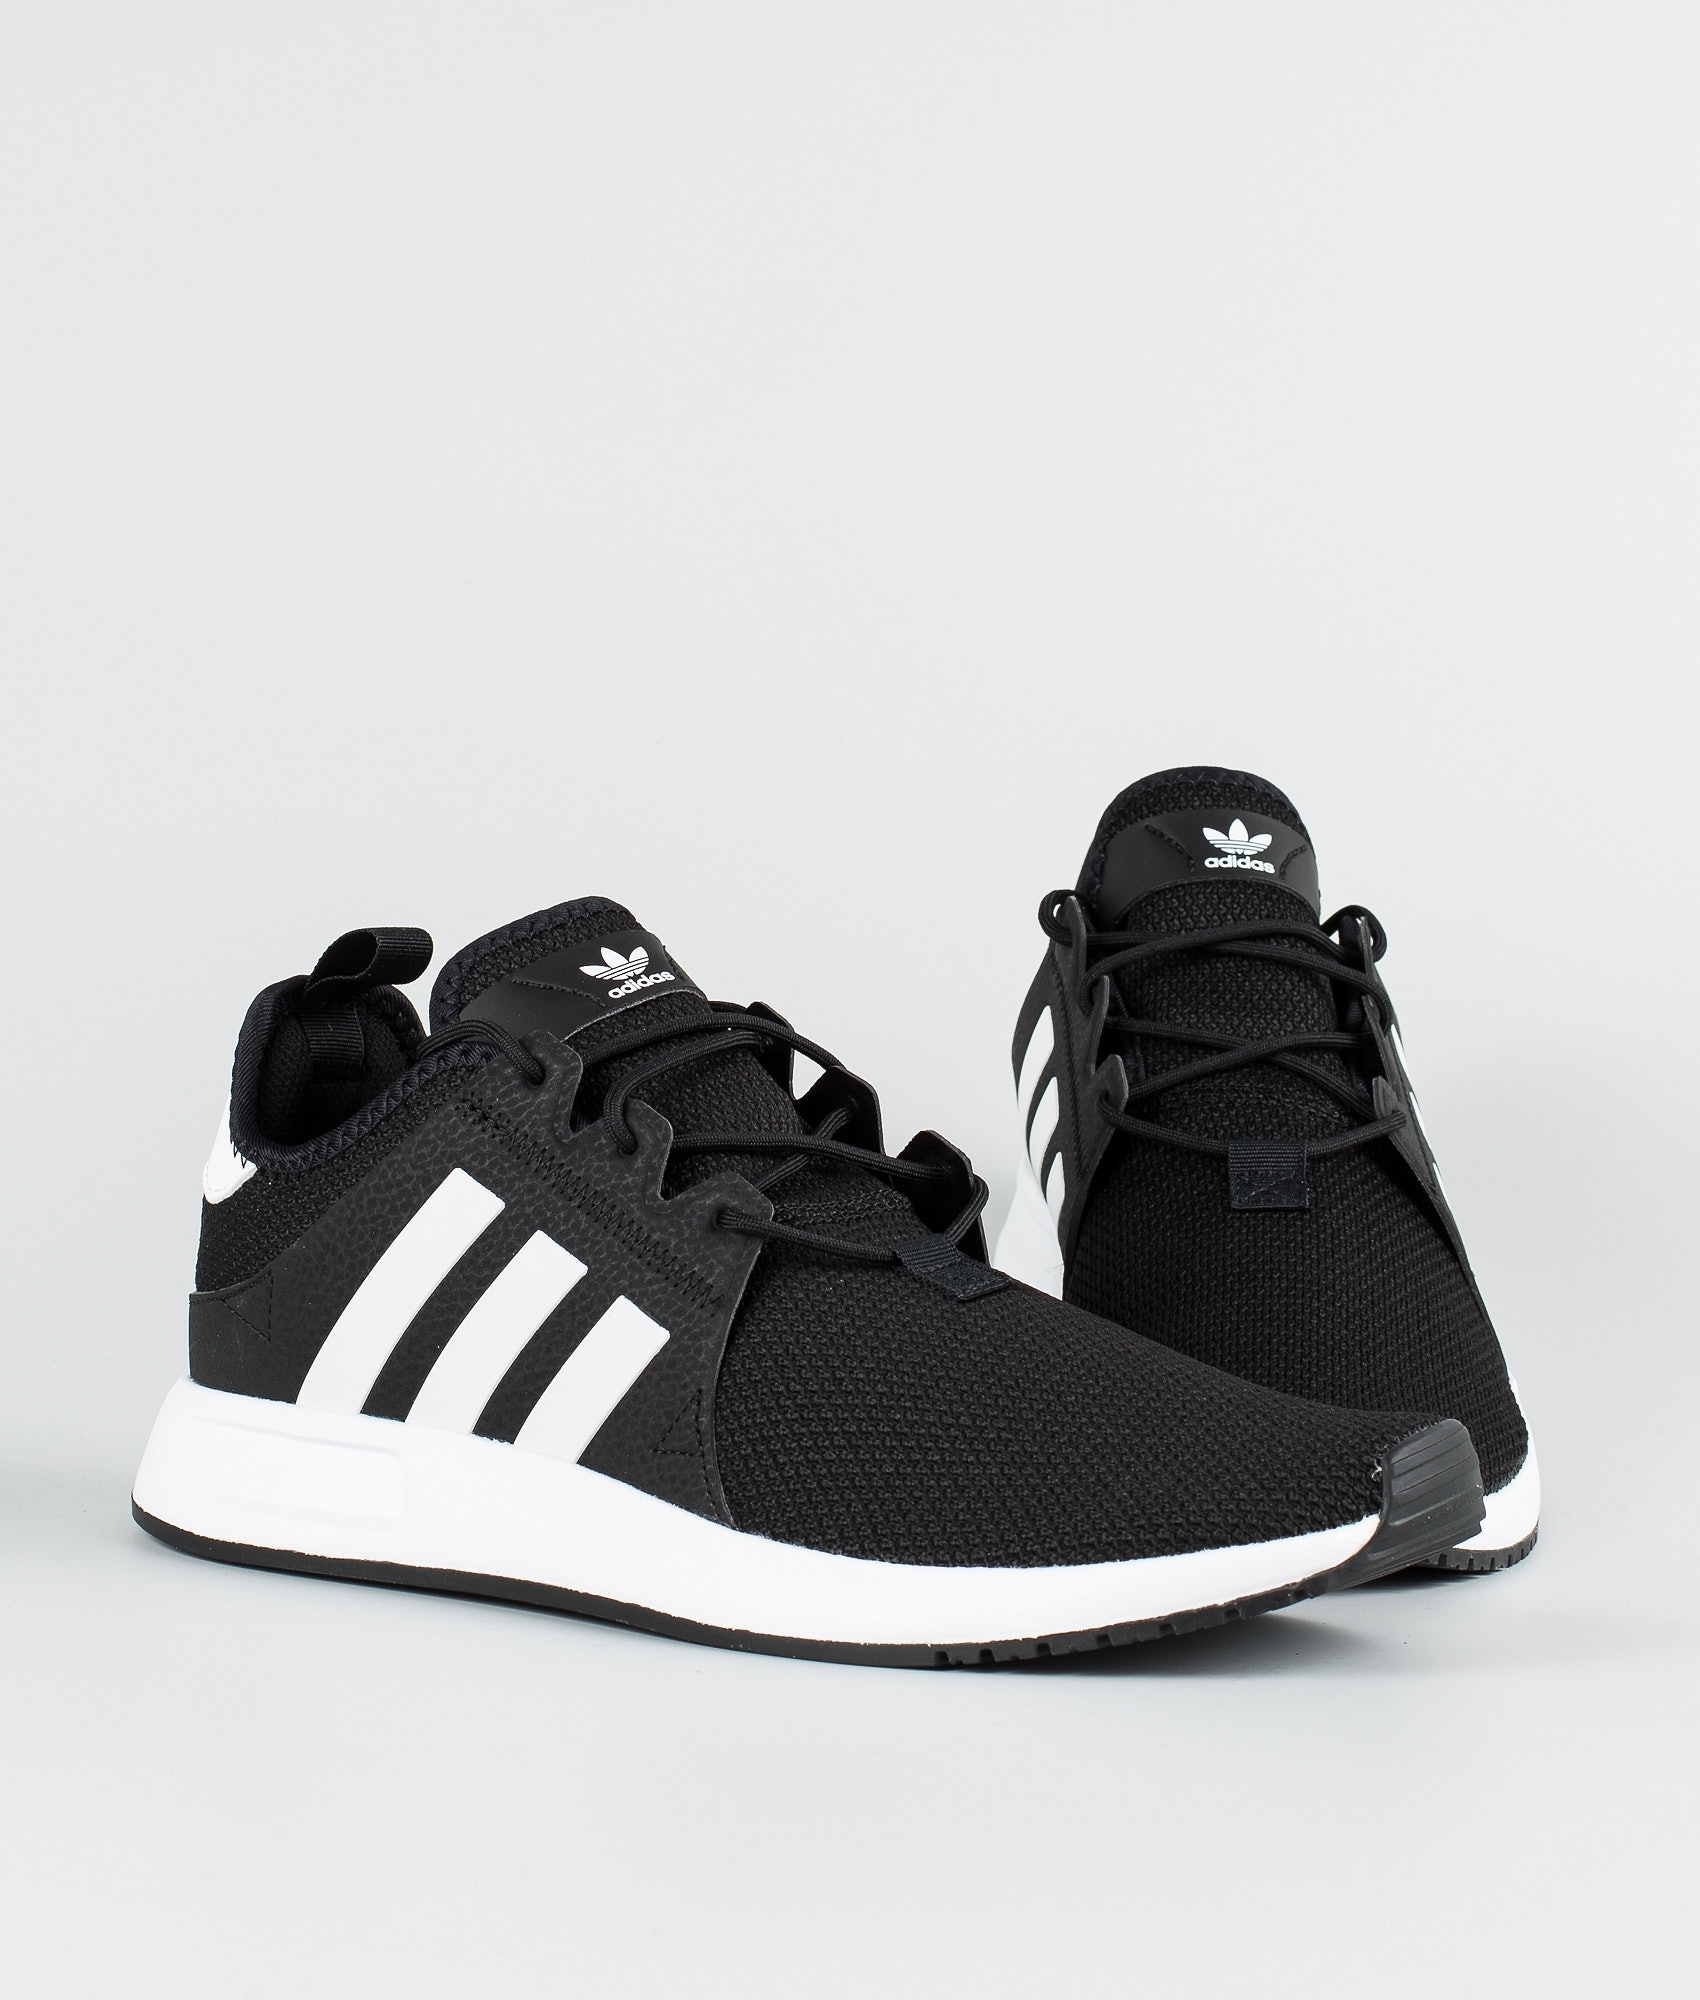 3cb59be93032f Adidas Originals X Plr Shoes Core Black Ftwr White Core Black ...